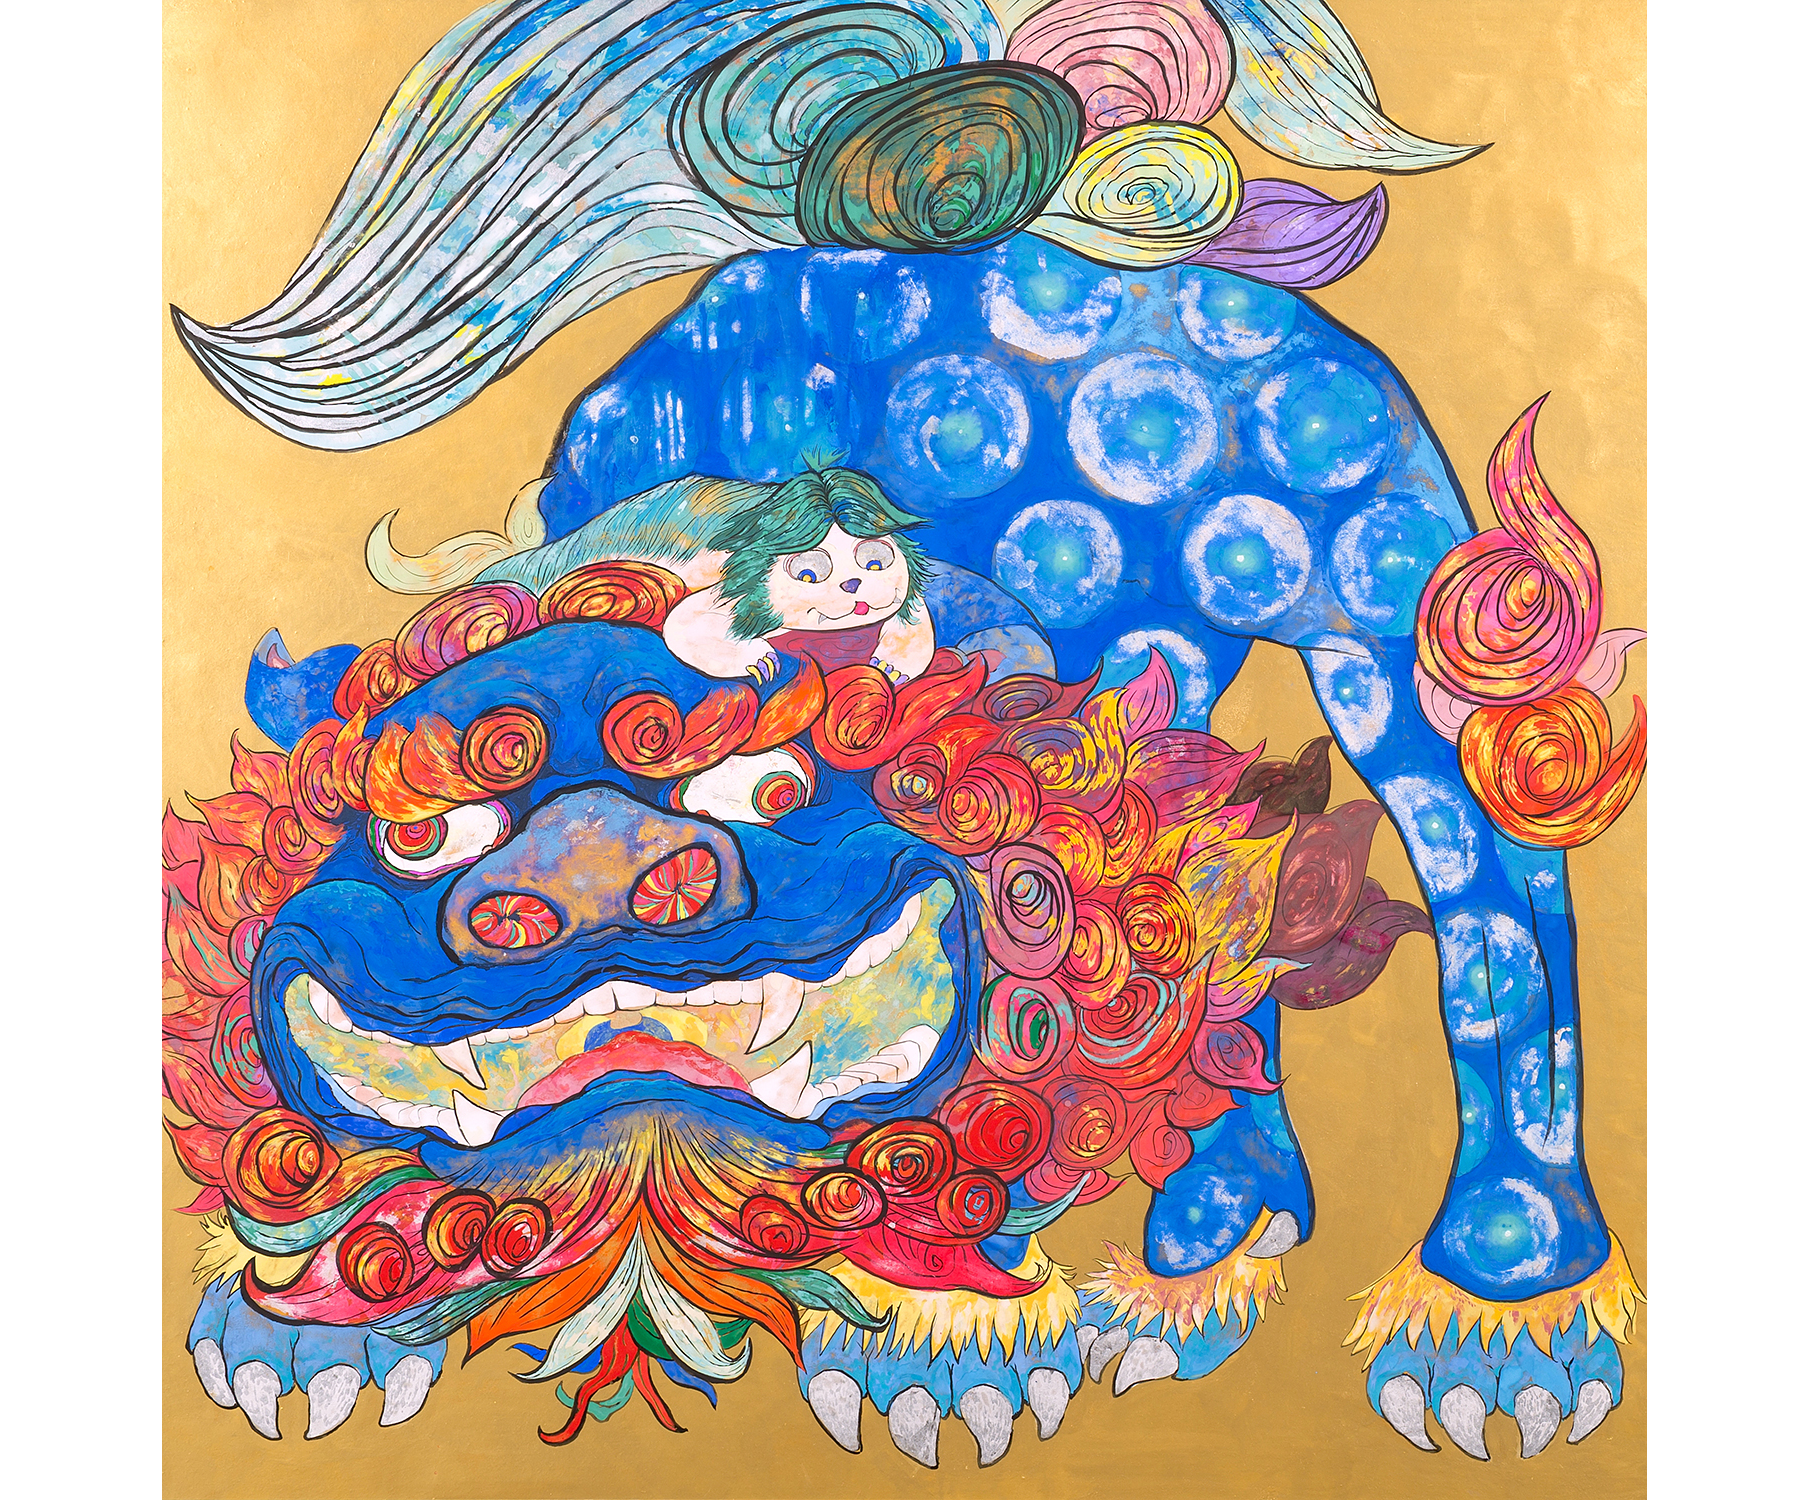 Kara Shishi Zu (Image of a Lion)